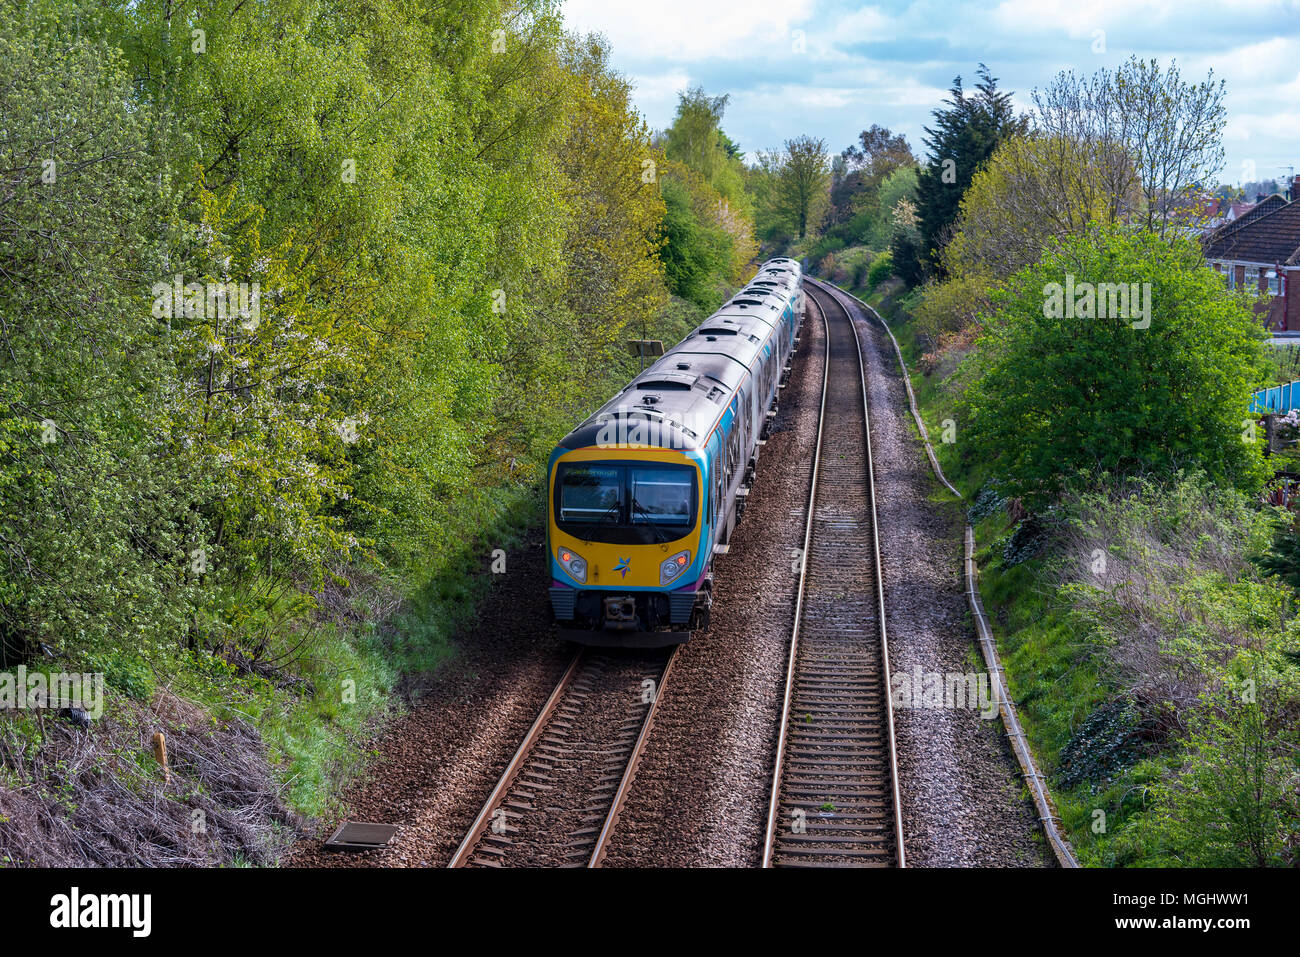 First Trans Pennine train. - Stock Image